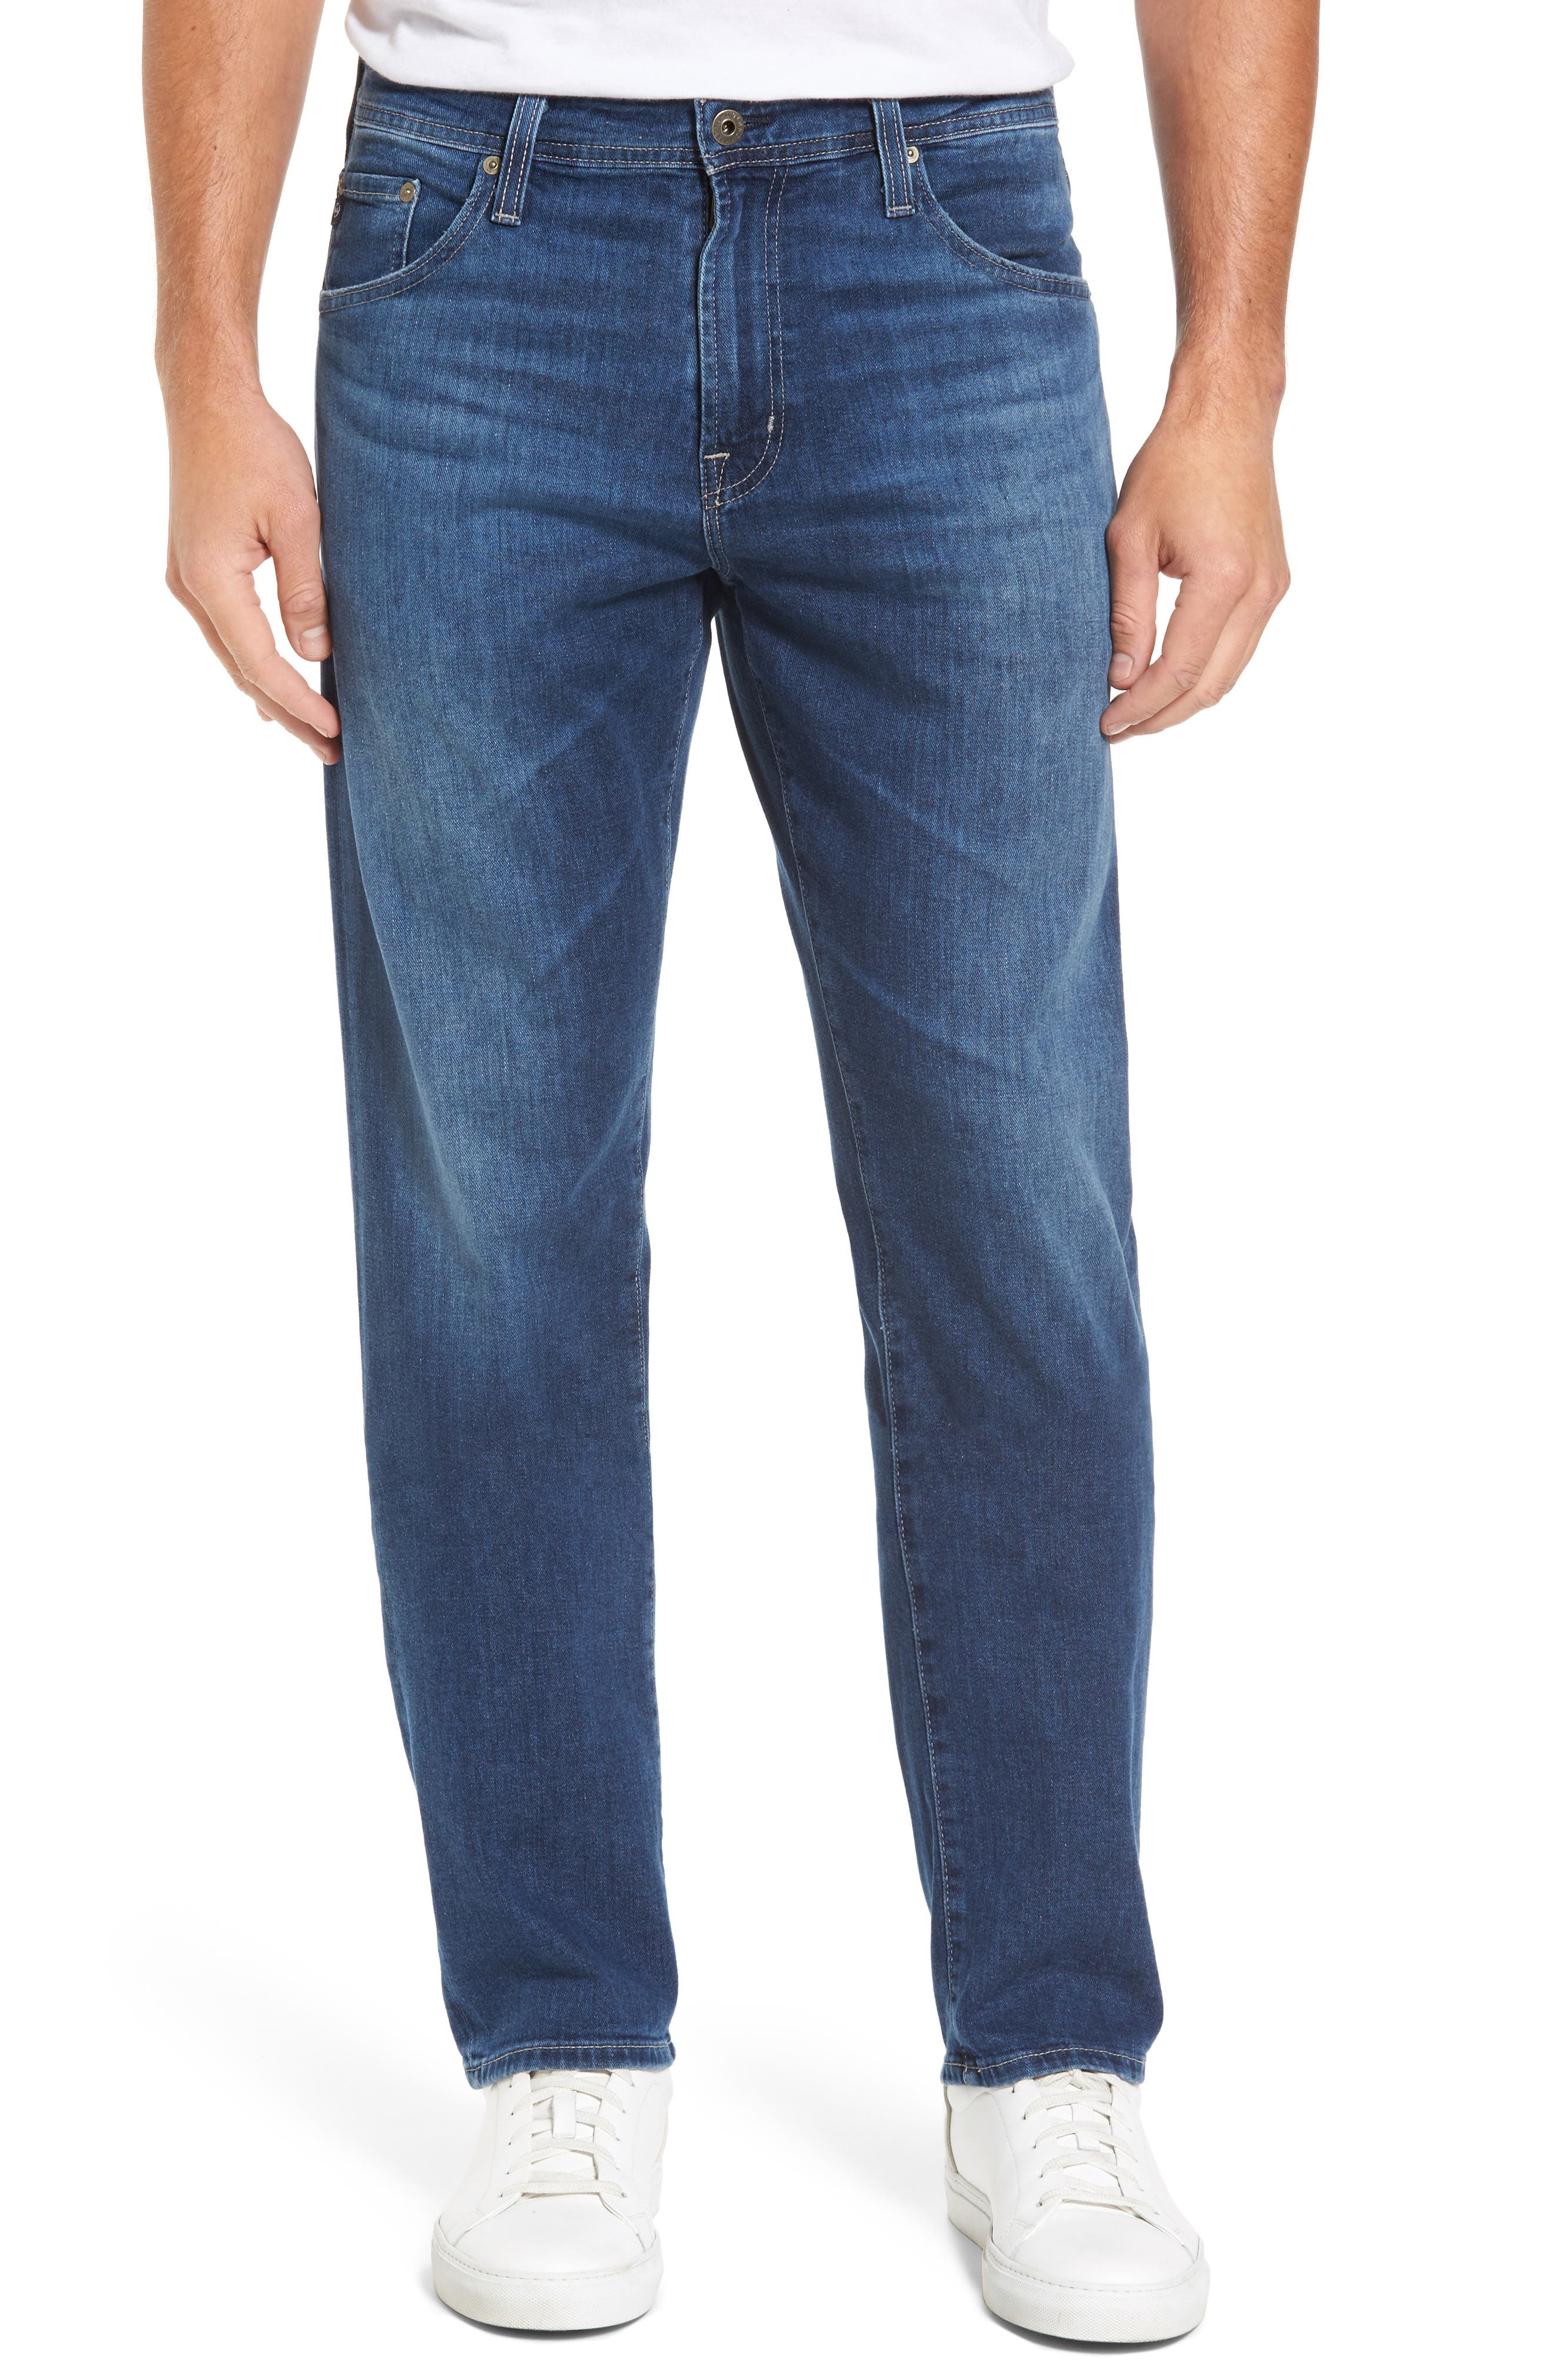 Ives Straight Leg Jeans,                         Main,                         color, Stately